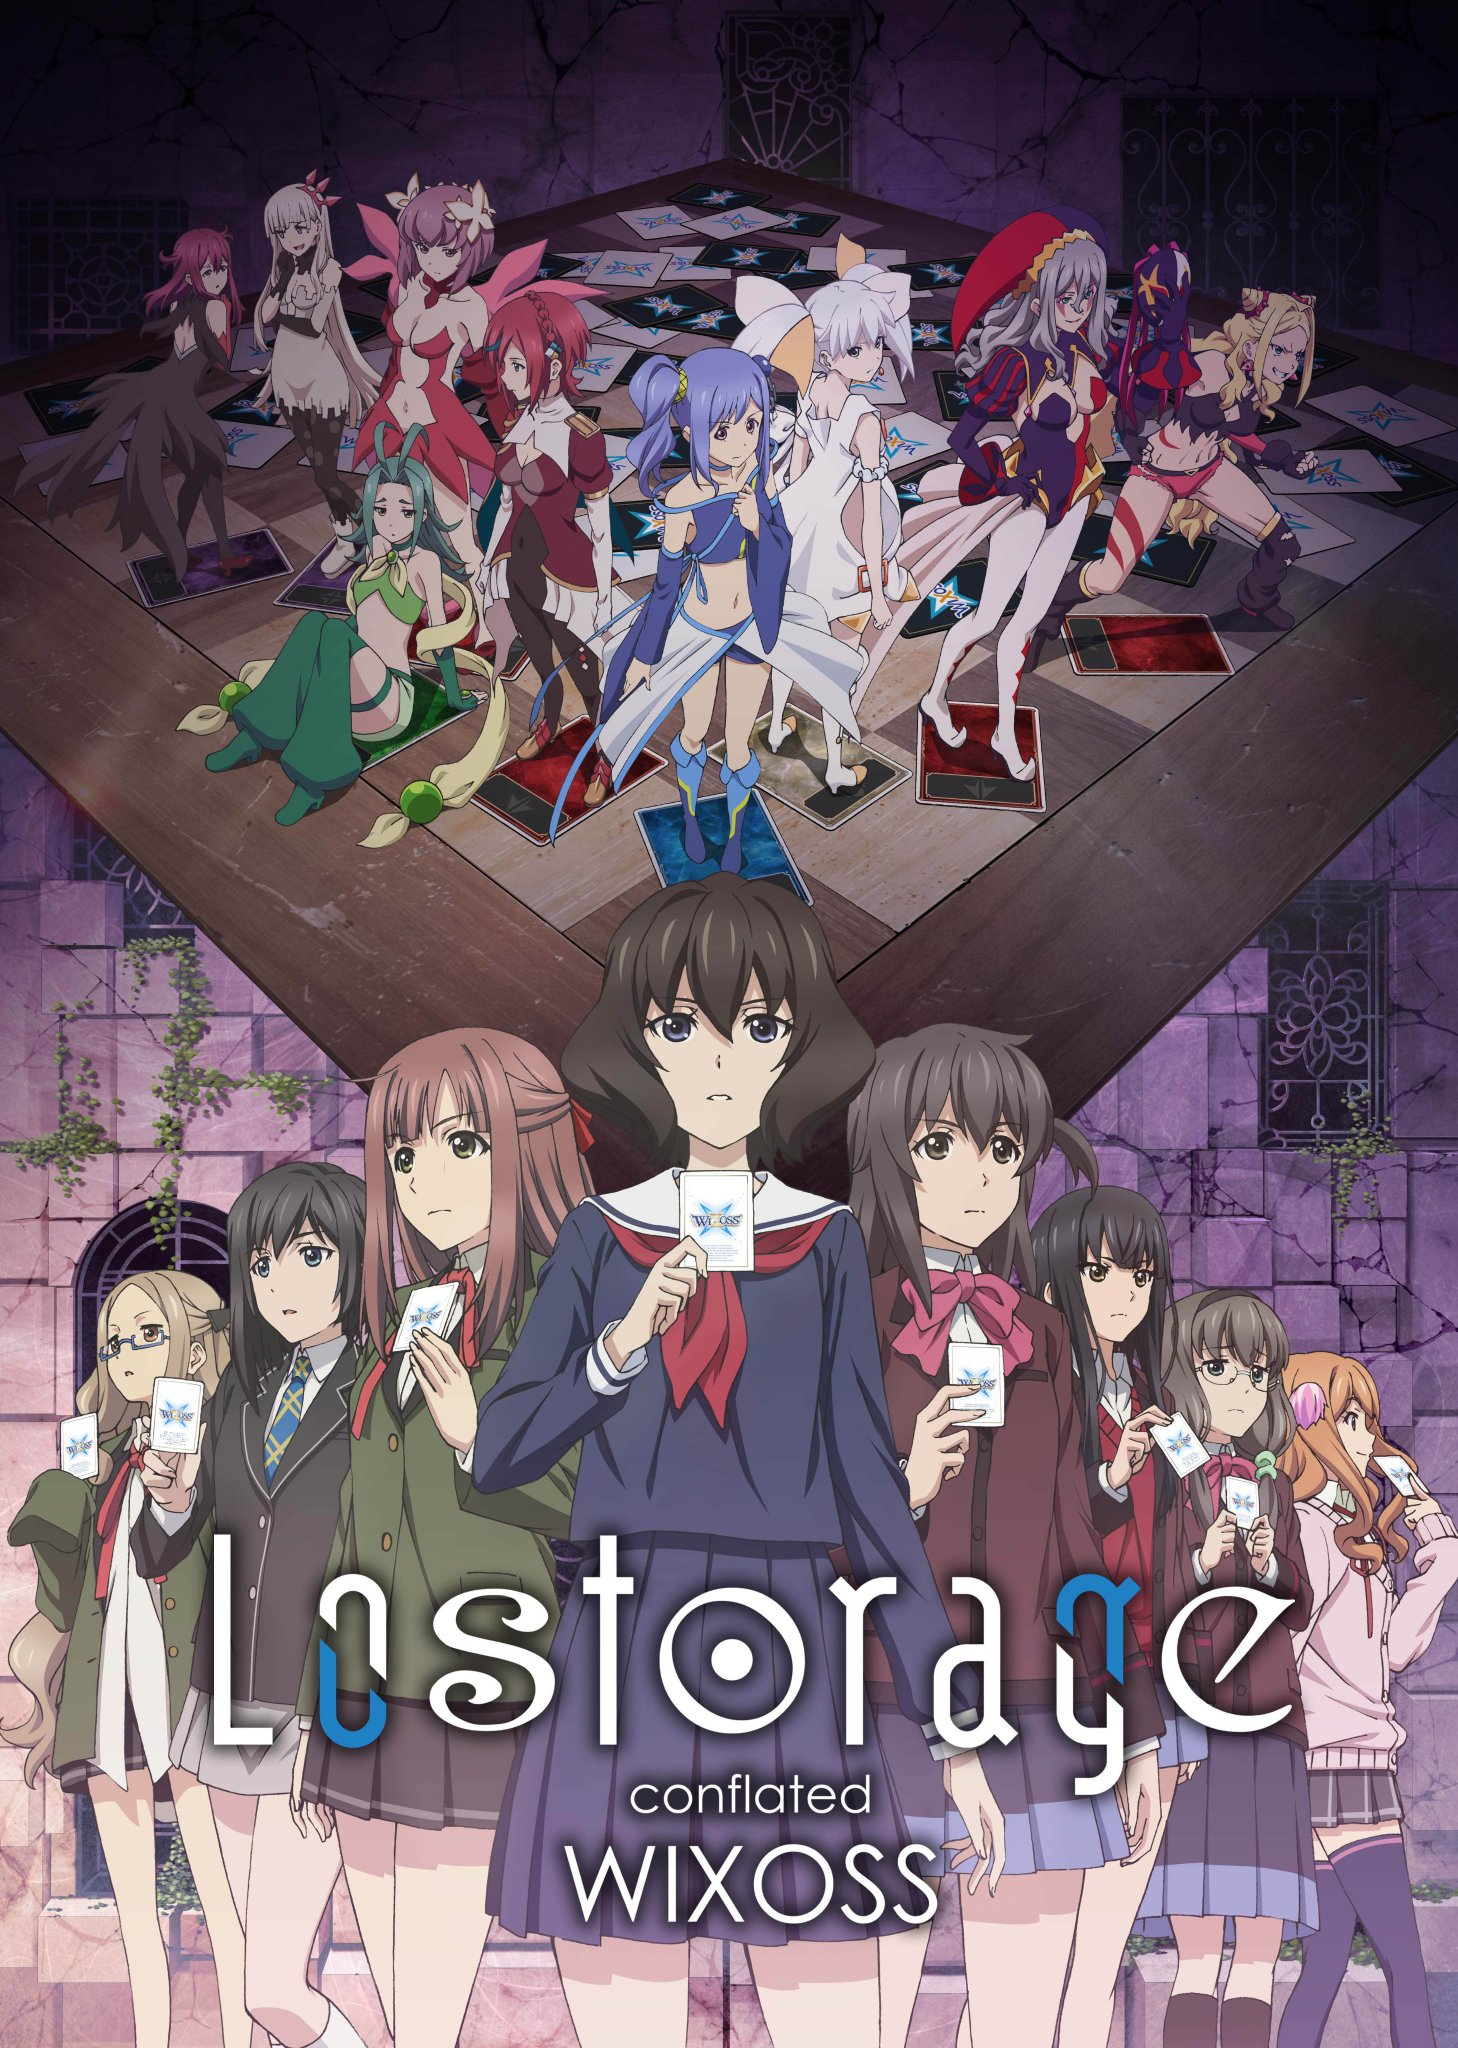 TV 애니메이션 'Lostorage conflated WIXOSS' ..